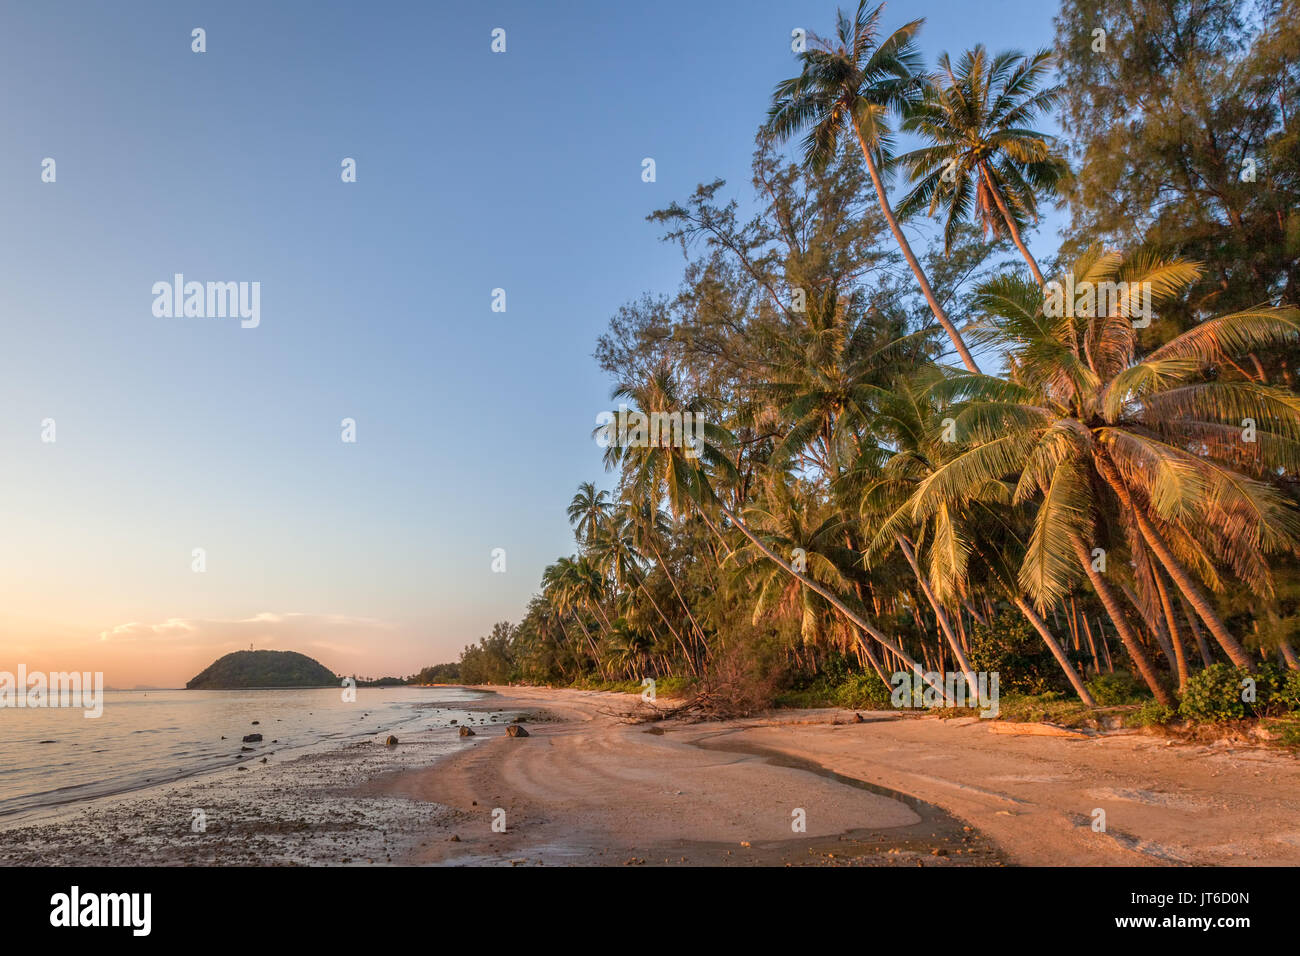 Colorful sunset at Nathon beach, Laem Yai, Koh Samui, Thailand - Stock Image